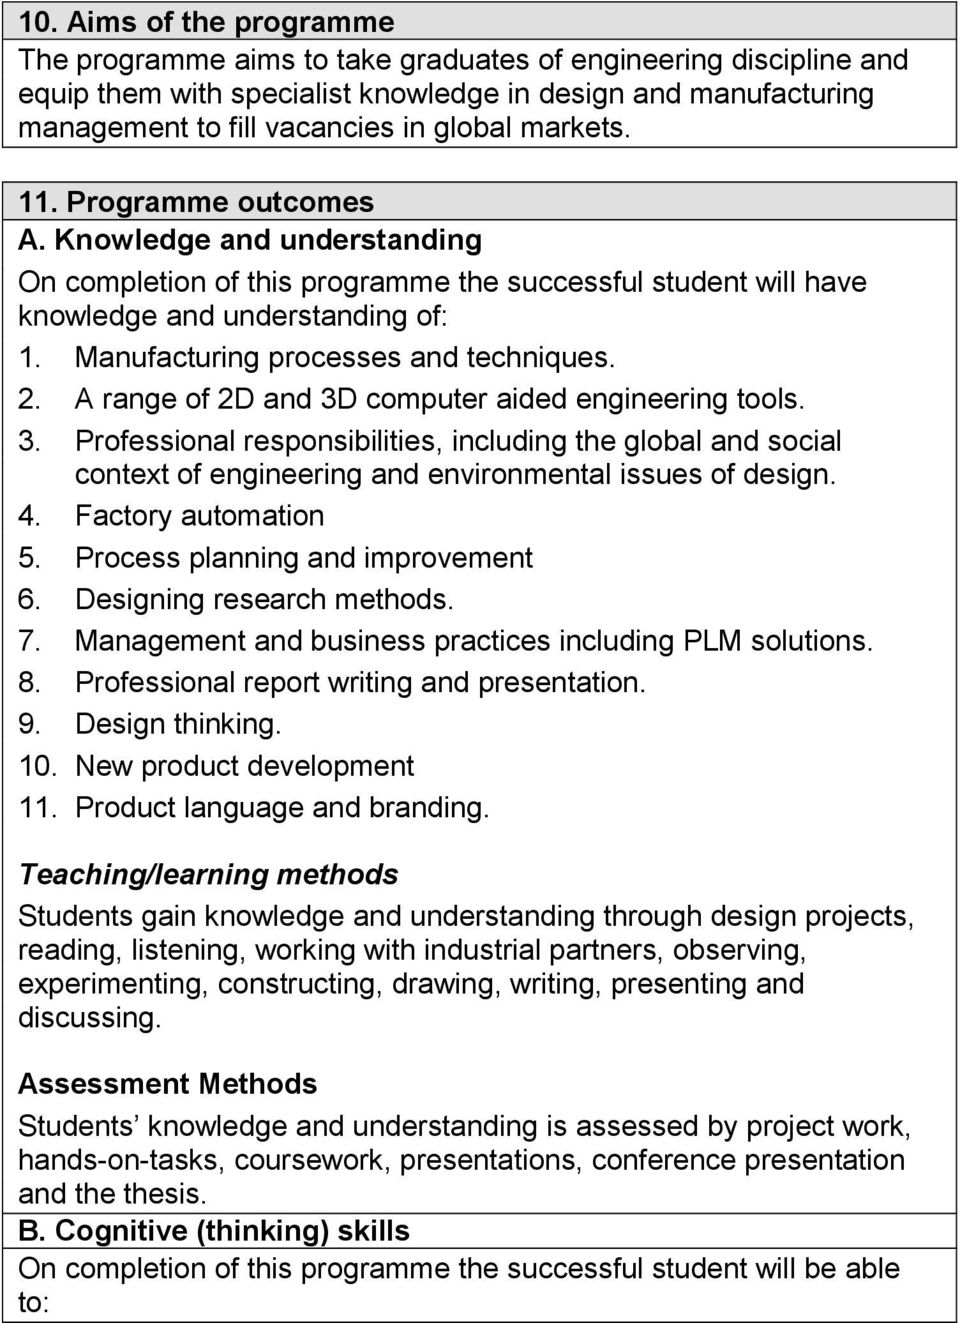 Manufacturing processes and techniques. 2. A range of 2D and 3D computer aided engineering tools. 3. Professional responsibilities, including the global and social context of engineering and environmental issues of design.